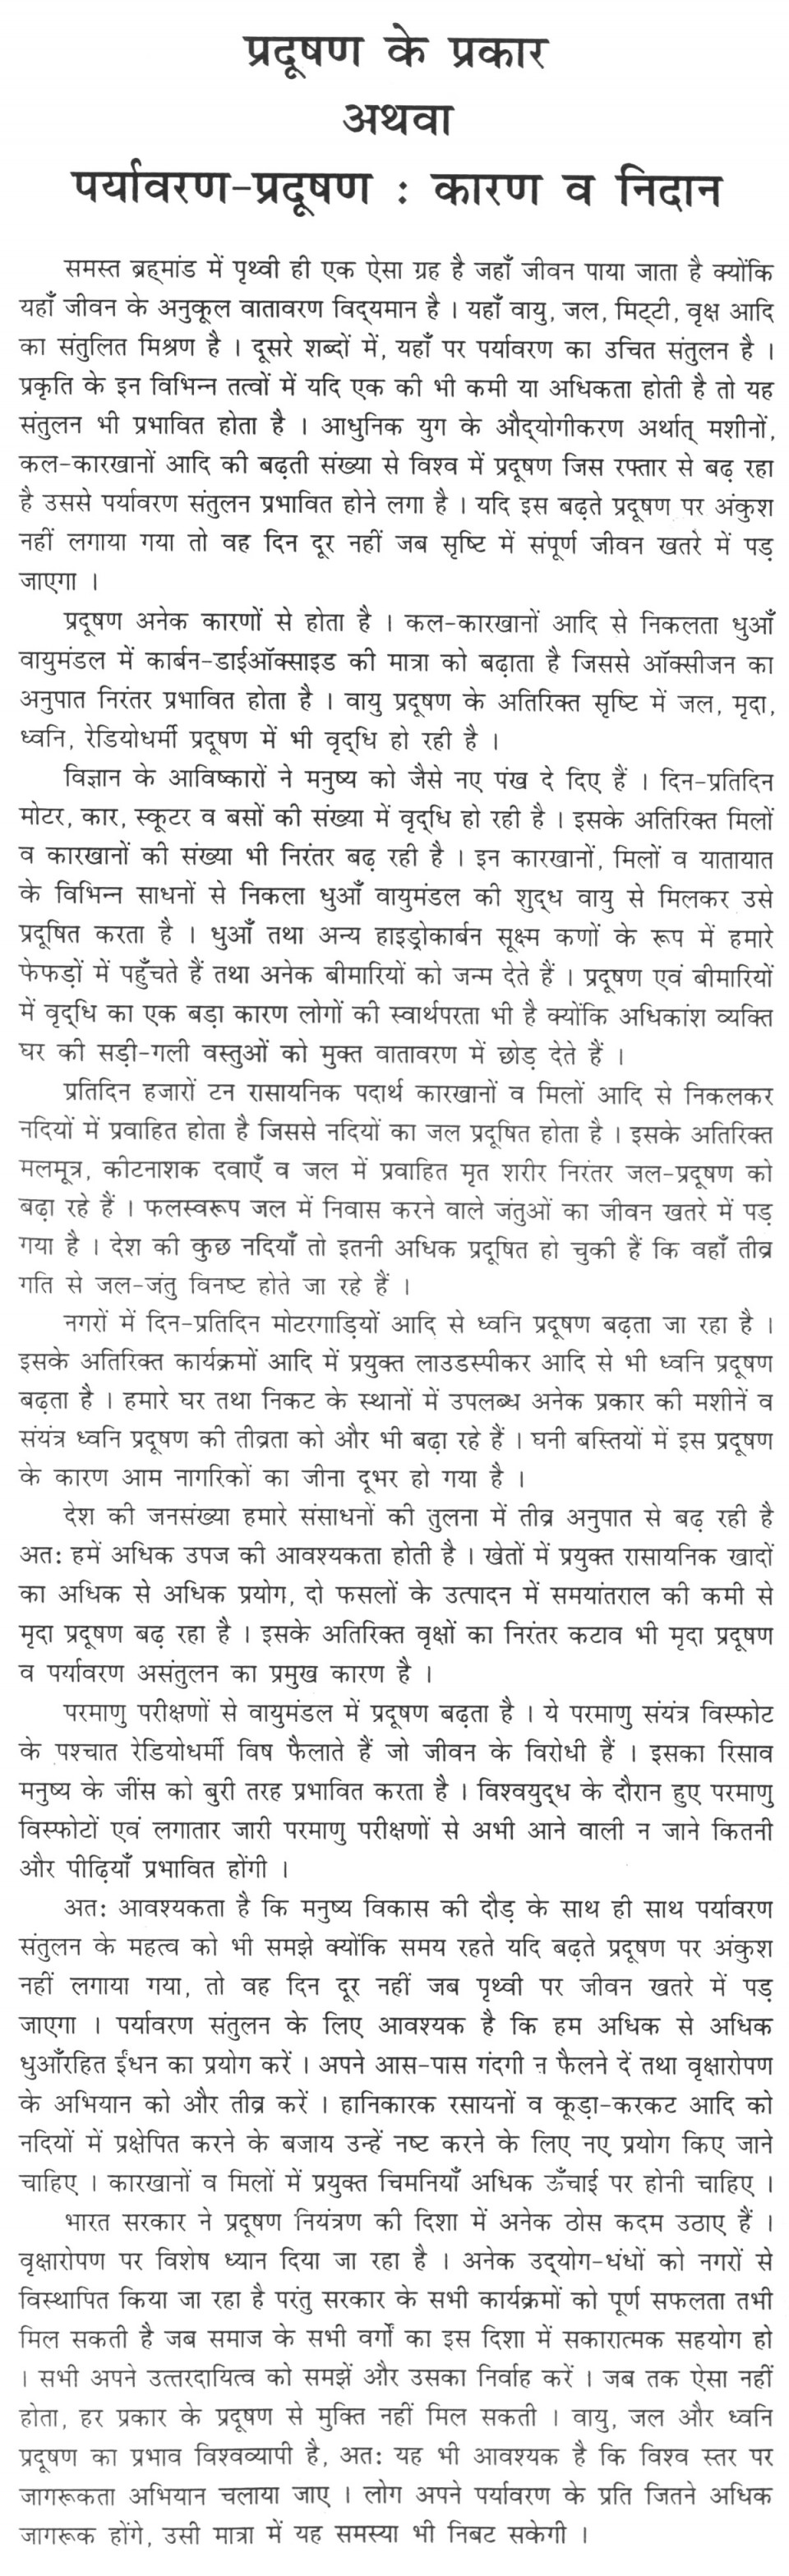 014 Good Habits Essay In Hindi Exceptional And Bad Healthy Eating 960